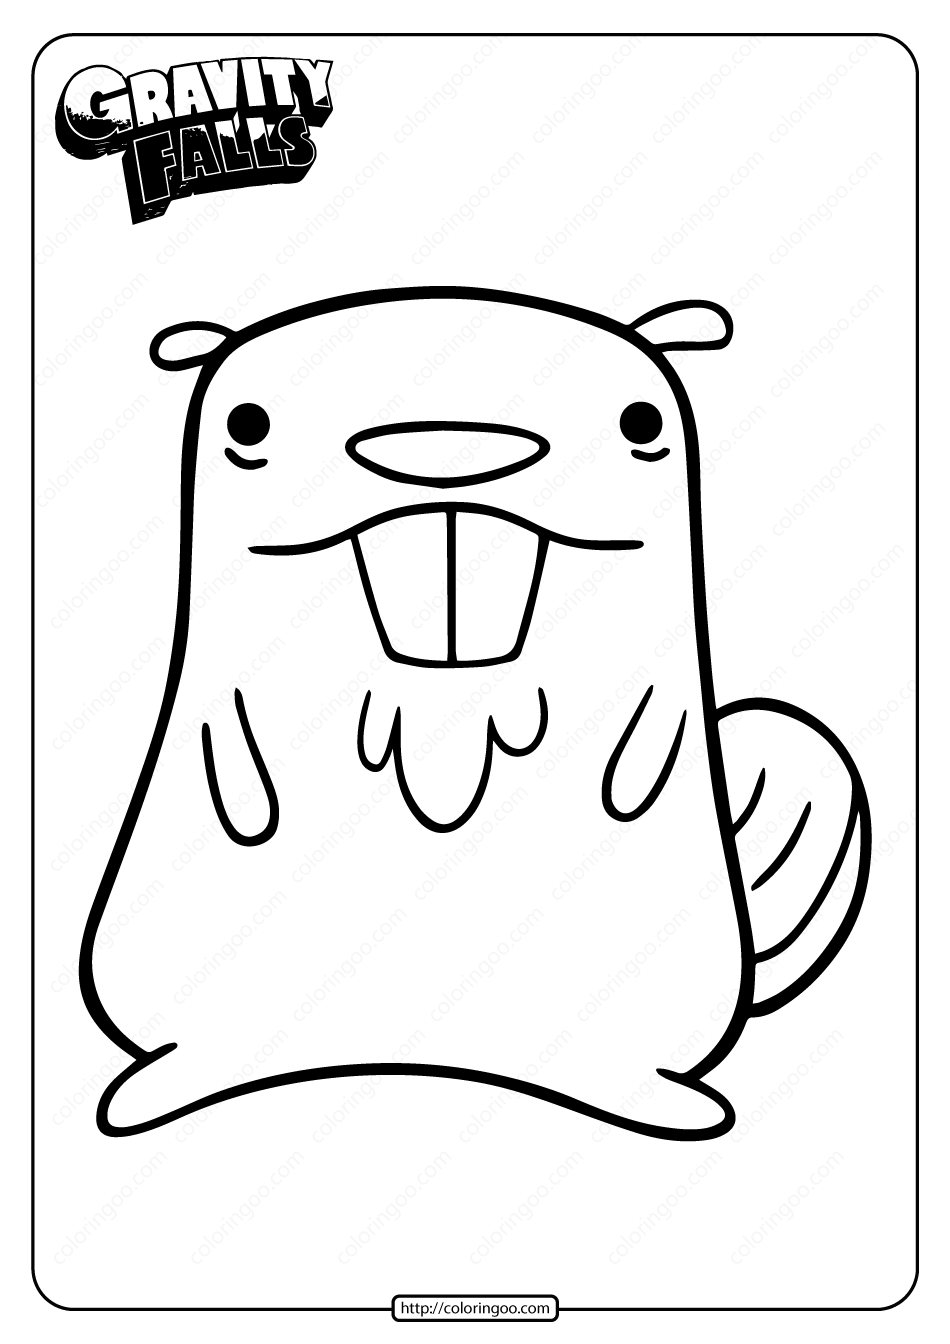 Printable Gravity Falls Beaver Coloring Pages